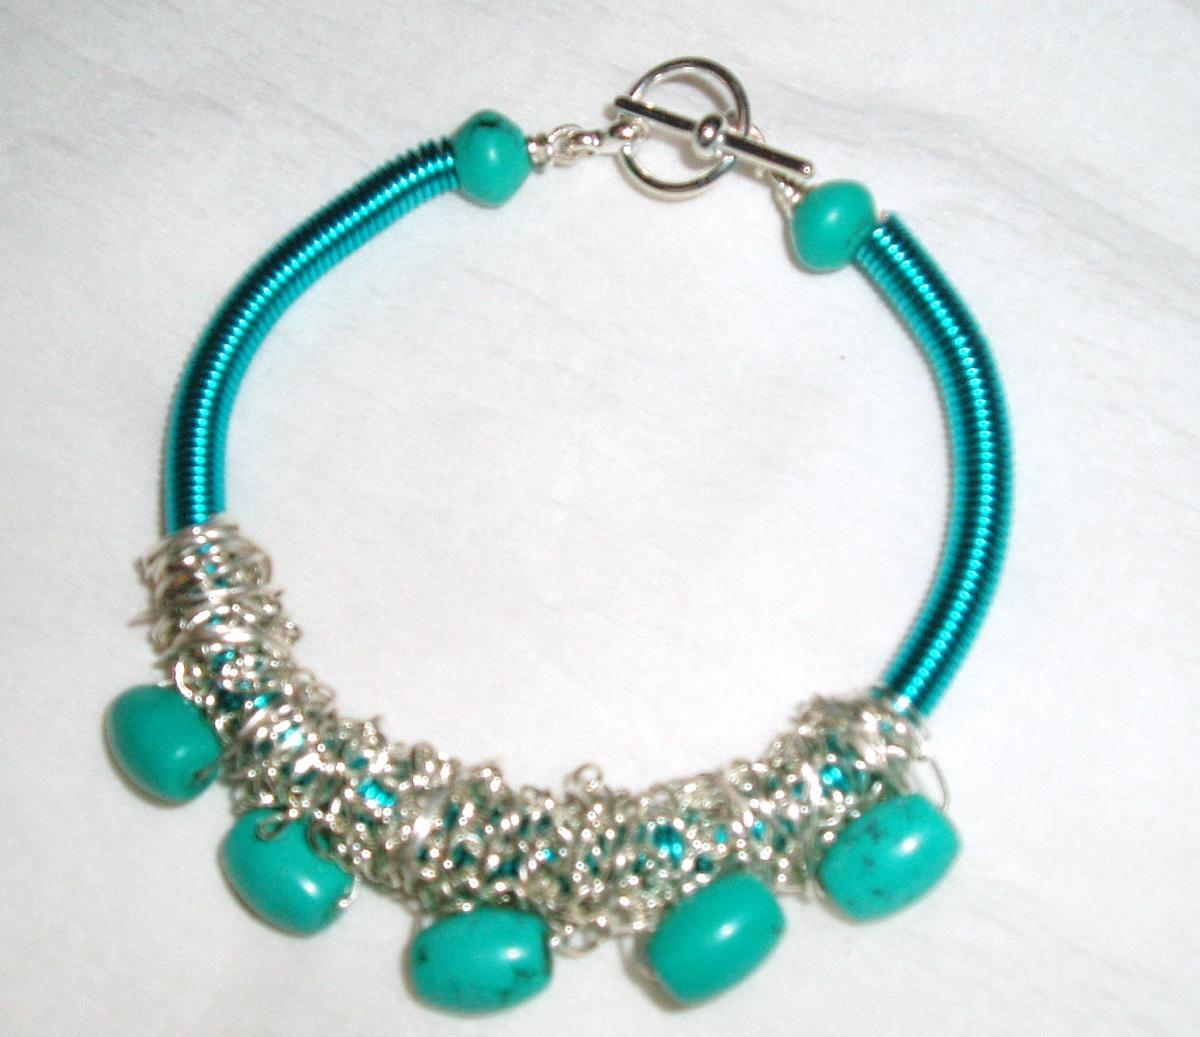 Jewelry Design Ideas jewelry design ideas hoop earrings Turquoise Gemstone And Turquoise Wire Coil Bracelet Handmade Handmade Jewelry Design Ideas